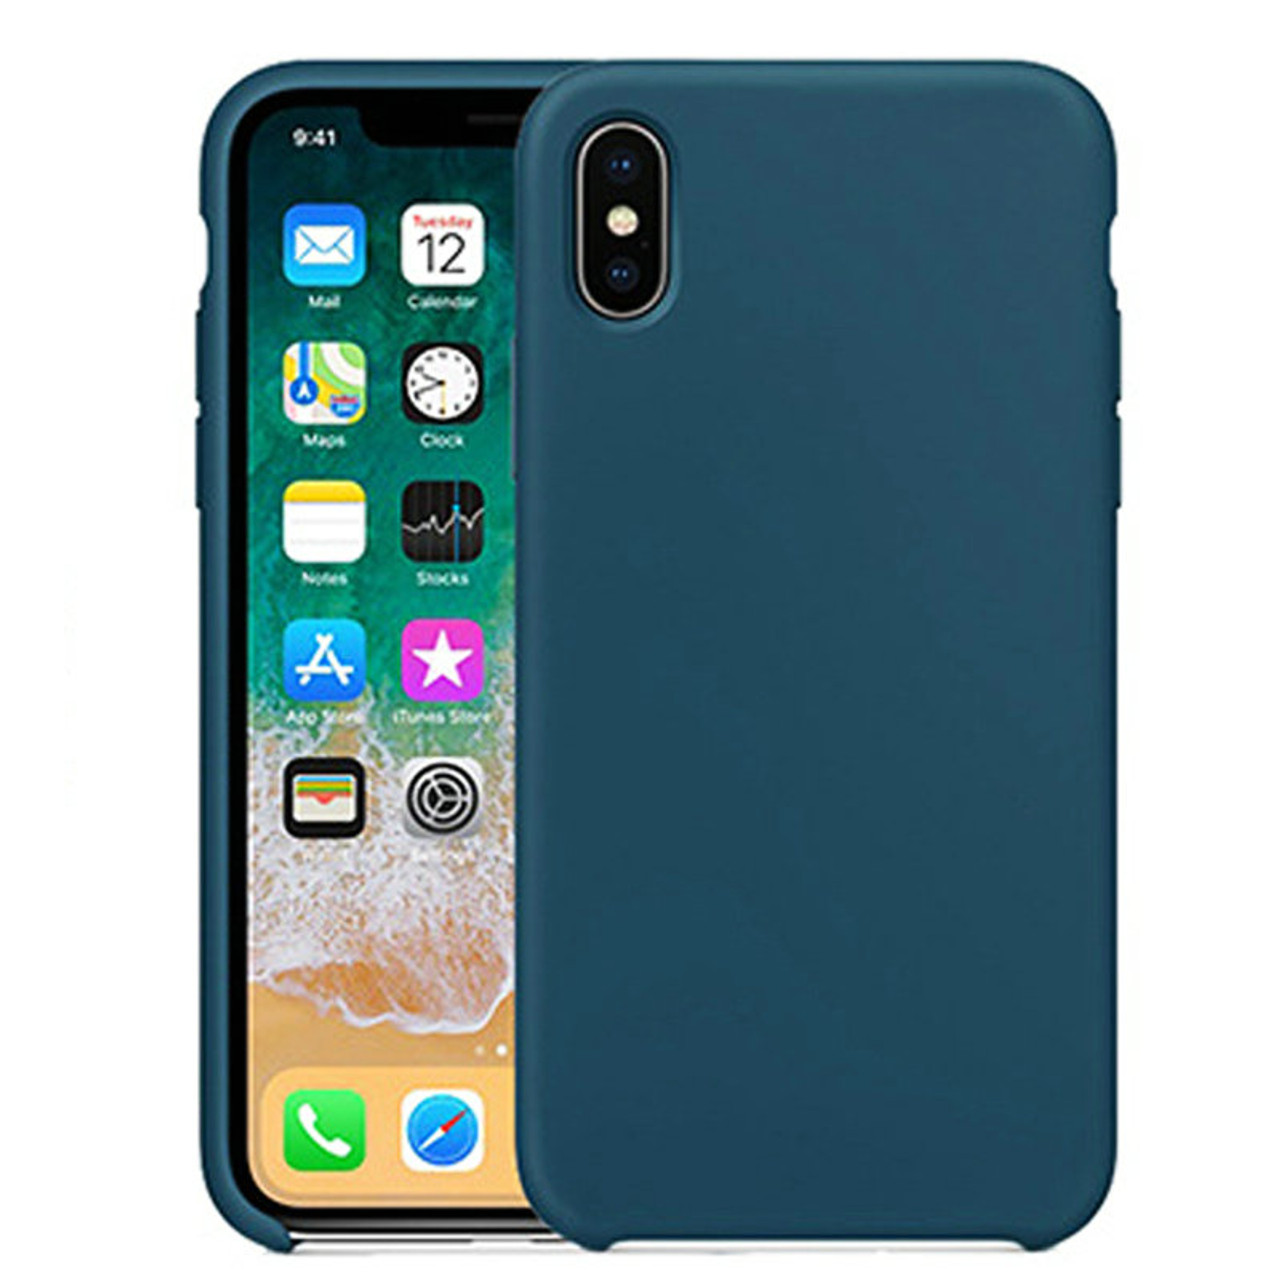 size 40 2e511 d5bf9 Original Silicone Case For iPhone 7 8 Plus Have LOGO Phone Silicon Cover  For iPhone X 6S 6 Plus 5 5s SE For Apple Retail Box